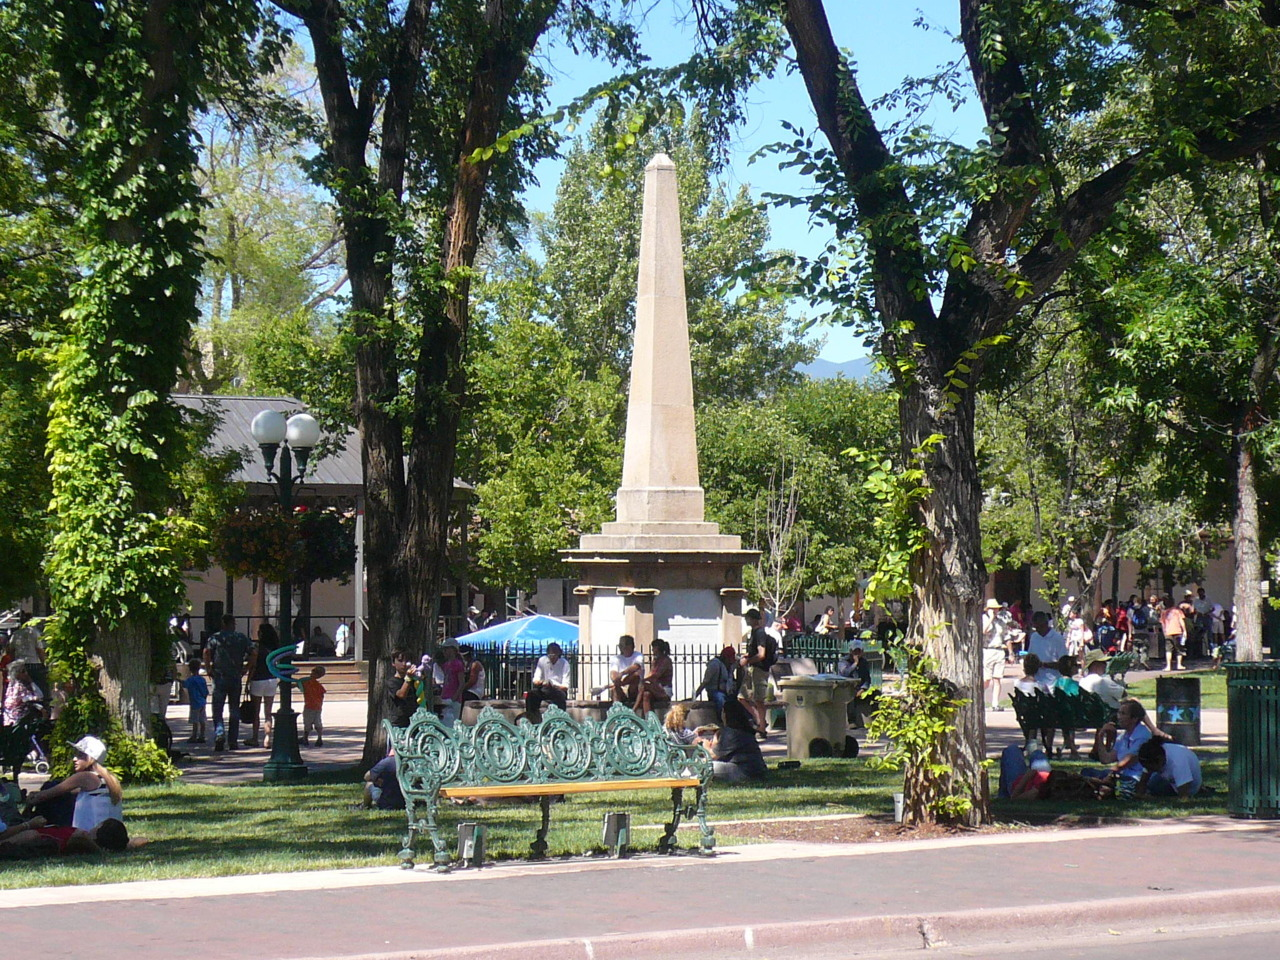 journeyalongroute66:  Santa Fe - Plaza Santa Fe, New Mexico